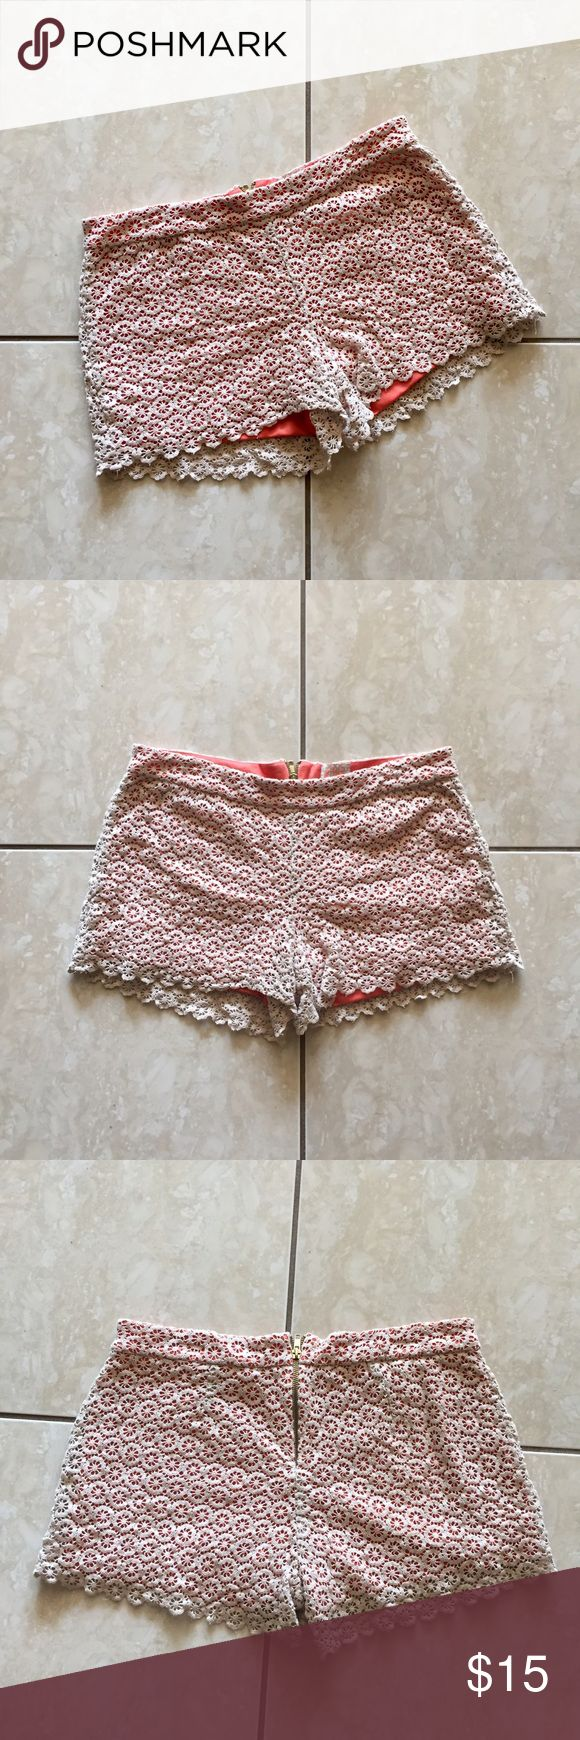 coral crochet lace shorts coral with cream crochet lace shorts . light and airy , in perfect condition ! don't hesitate to ask questions or make offers 😄 GB Shorts